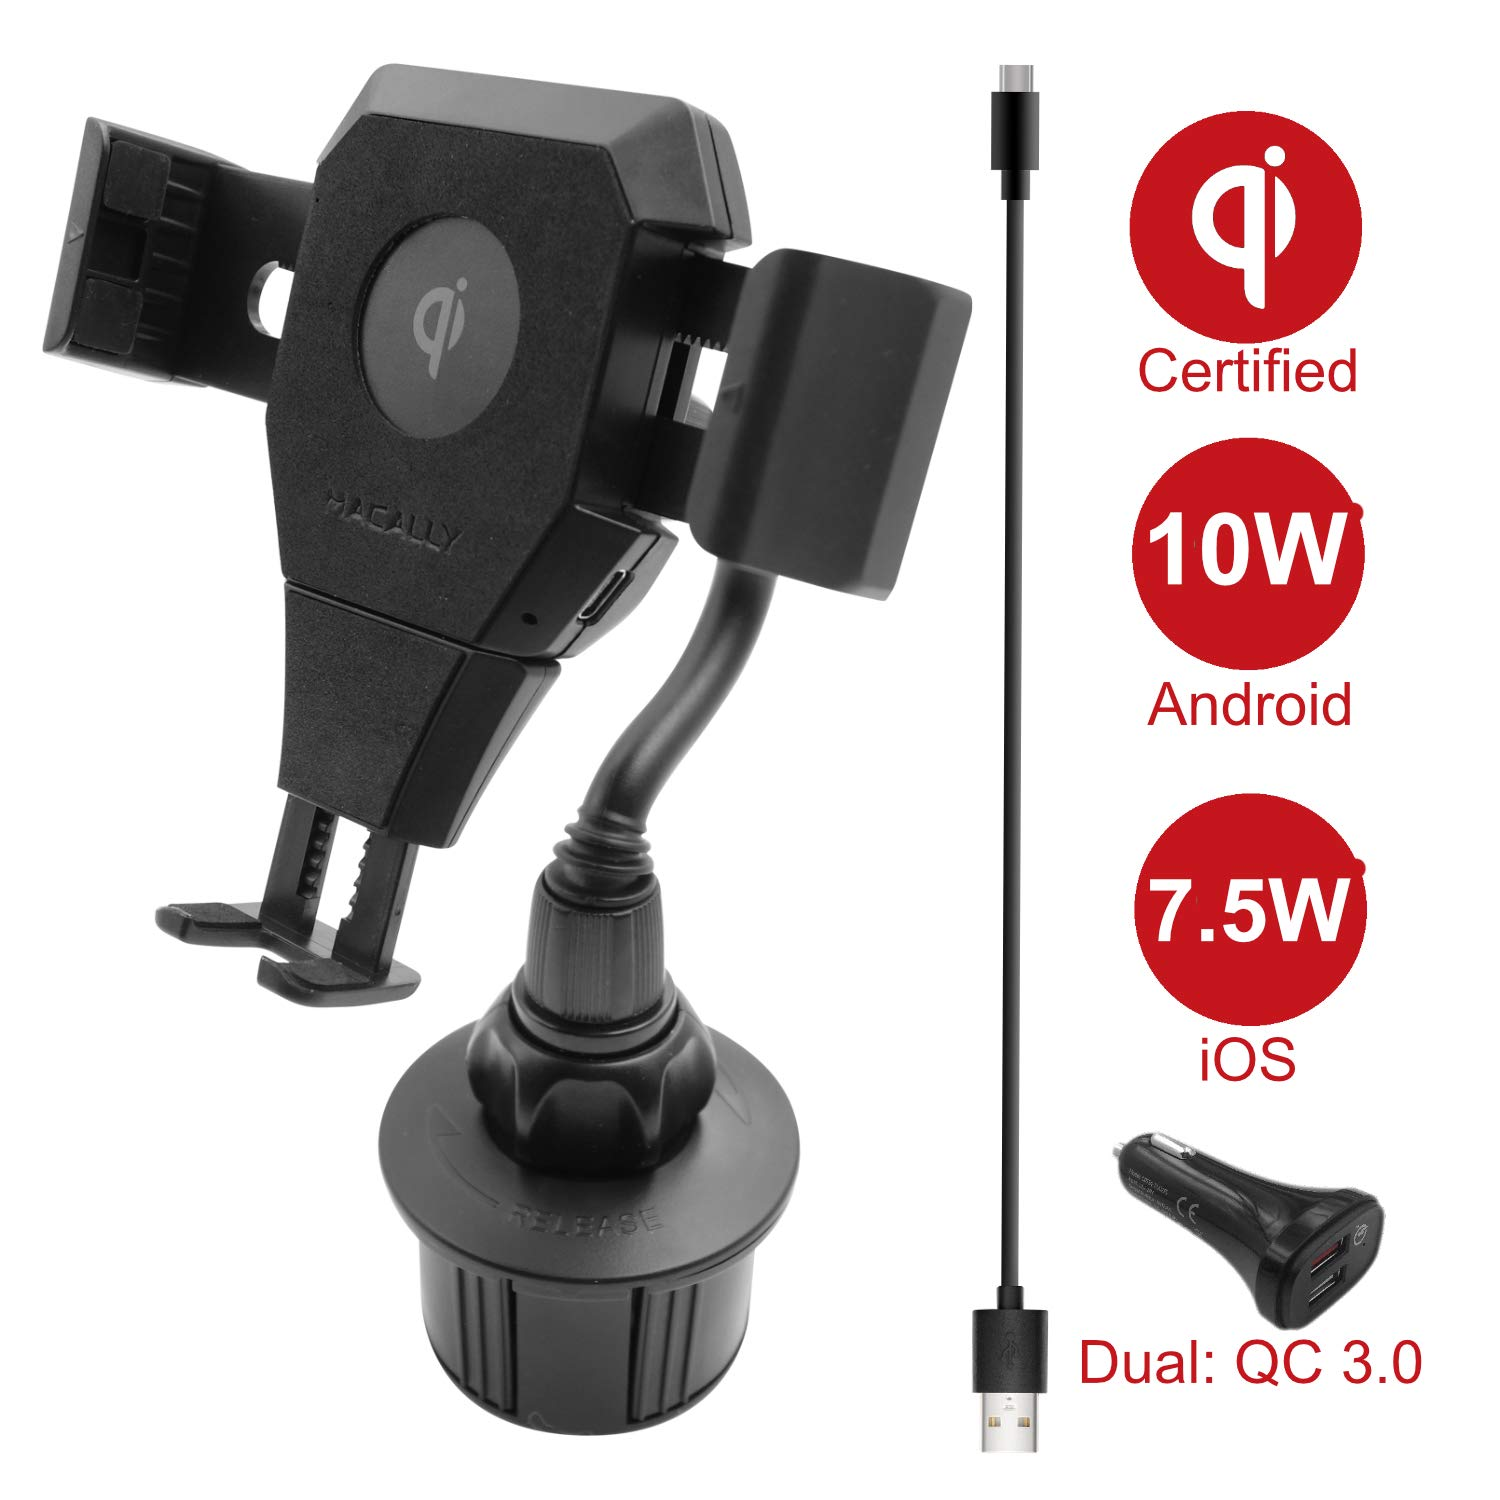 Macally Wireless Charging Car Mount, Cup Holder Phone Mount Charger Compatible with Fast Charging Qi 10W 7.5W Smartphones for Apple iPhone Xs XS Max XR X 8 8 Plus 7 7+ SE 6s 6 Samsung Galaxy S10 S9 S8